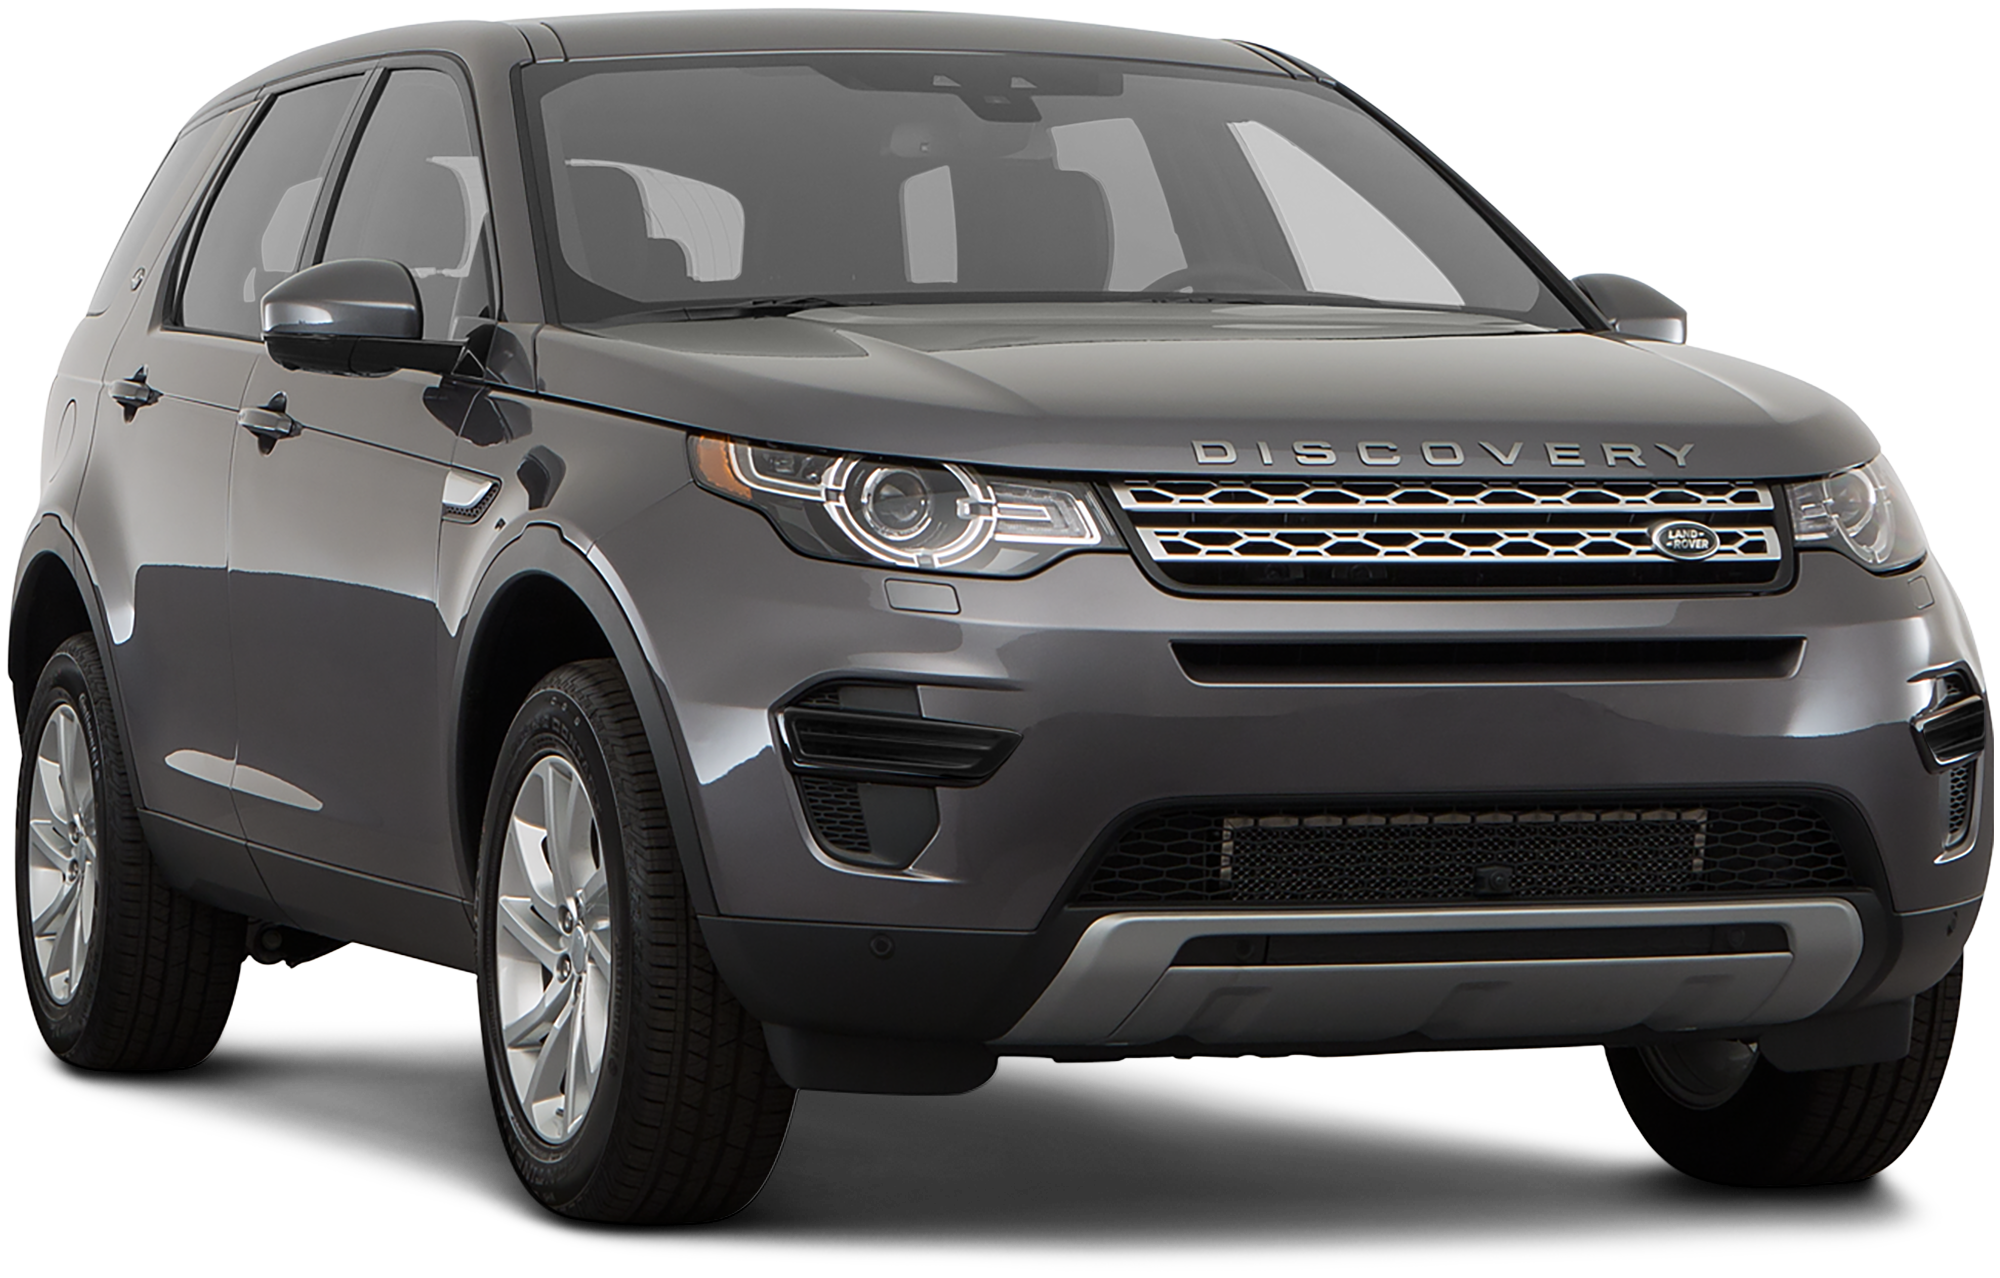 http://images.dealer.com/ddc/vehicles/2019/Land%20Rover/Discovery%20Sport/SUV/trim_SE_27c18e/perspective/front-right/2020_24.png